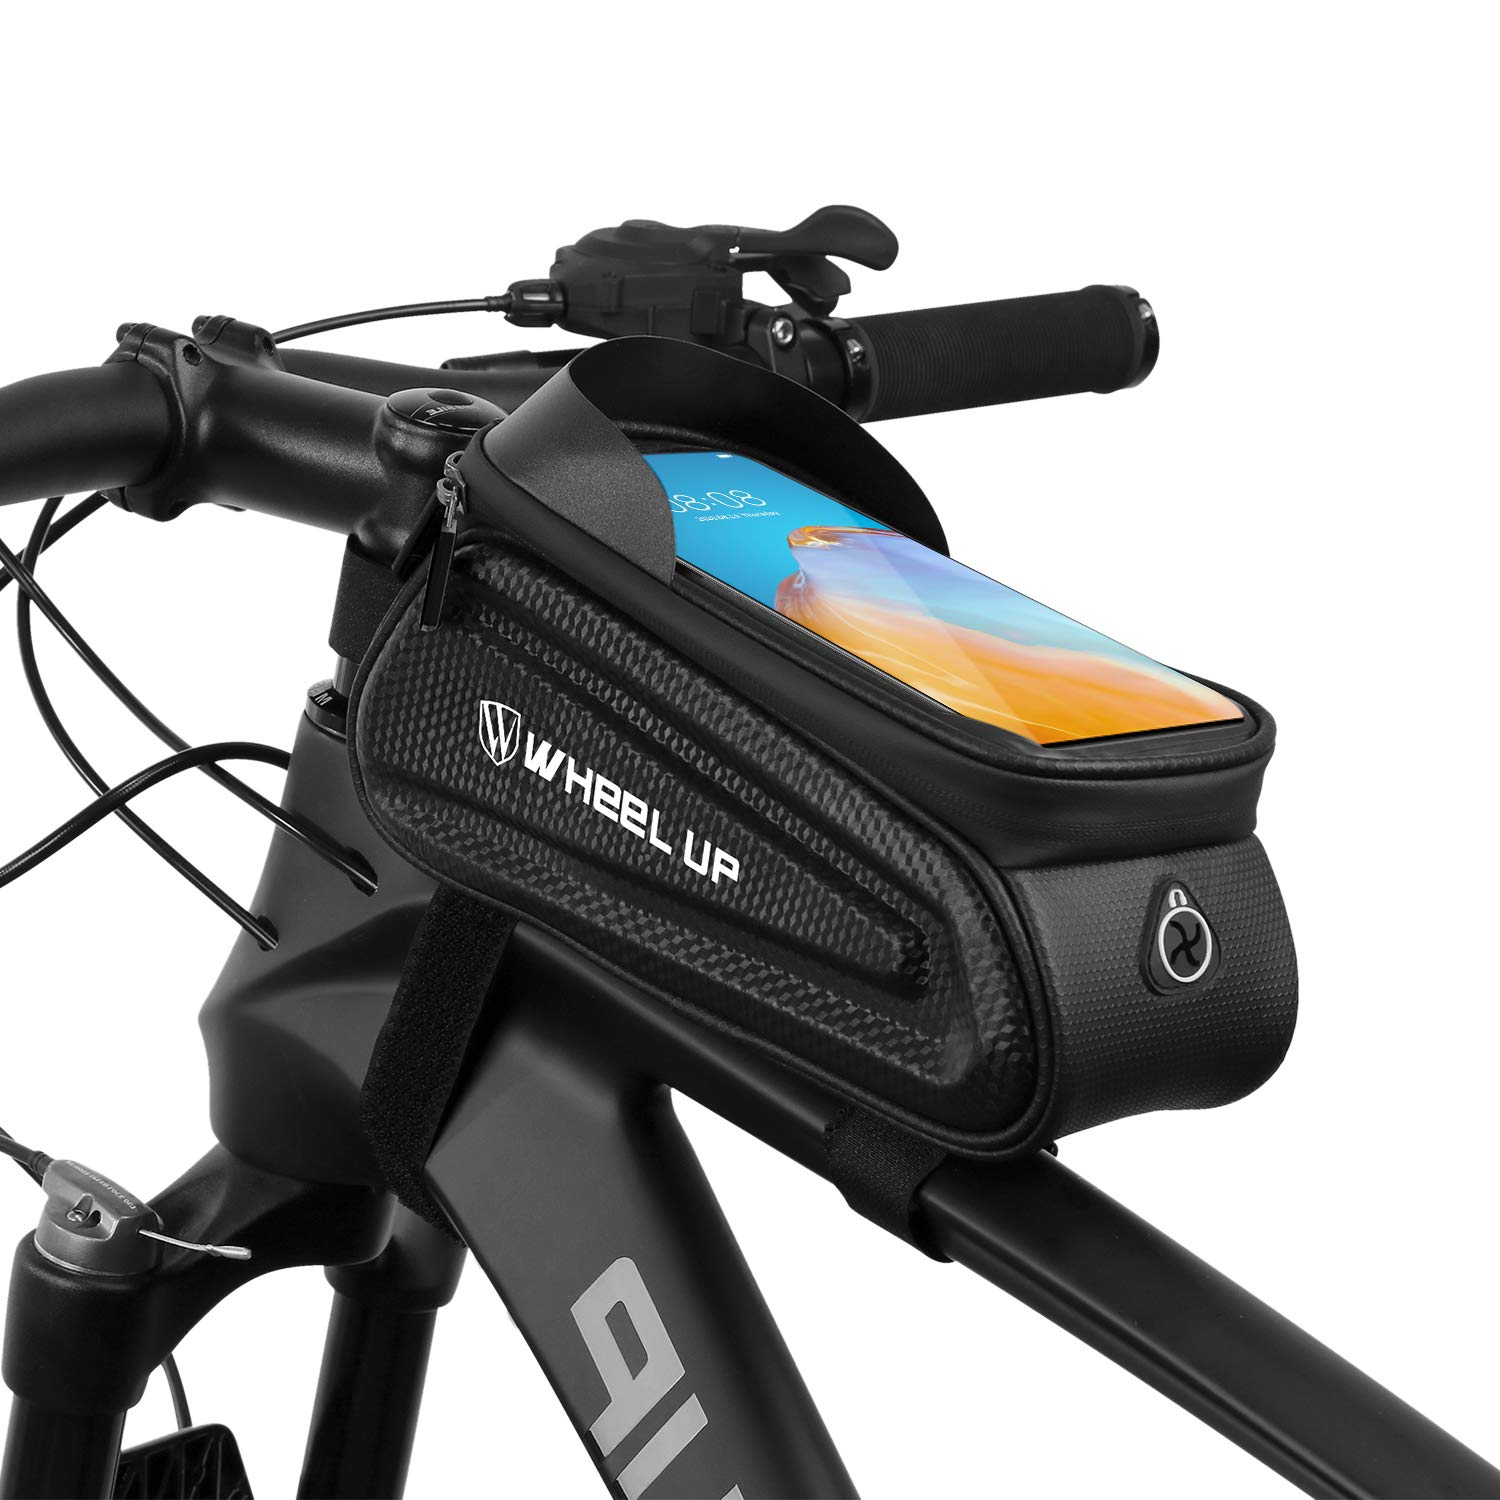 Suruid Bike Frame Bag, Waterproof Bike Phone Mount Bag Large Capacity Front Frame Top Tube Handlebar Bag with Touch Screen Phone Holder Case Compatible with All Cellphones Under 7.0inches